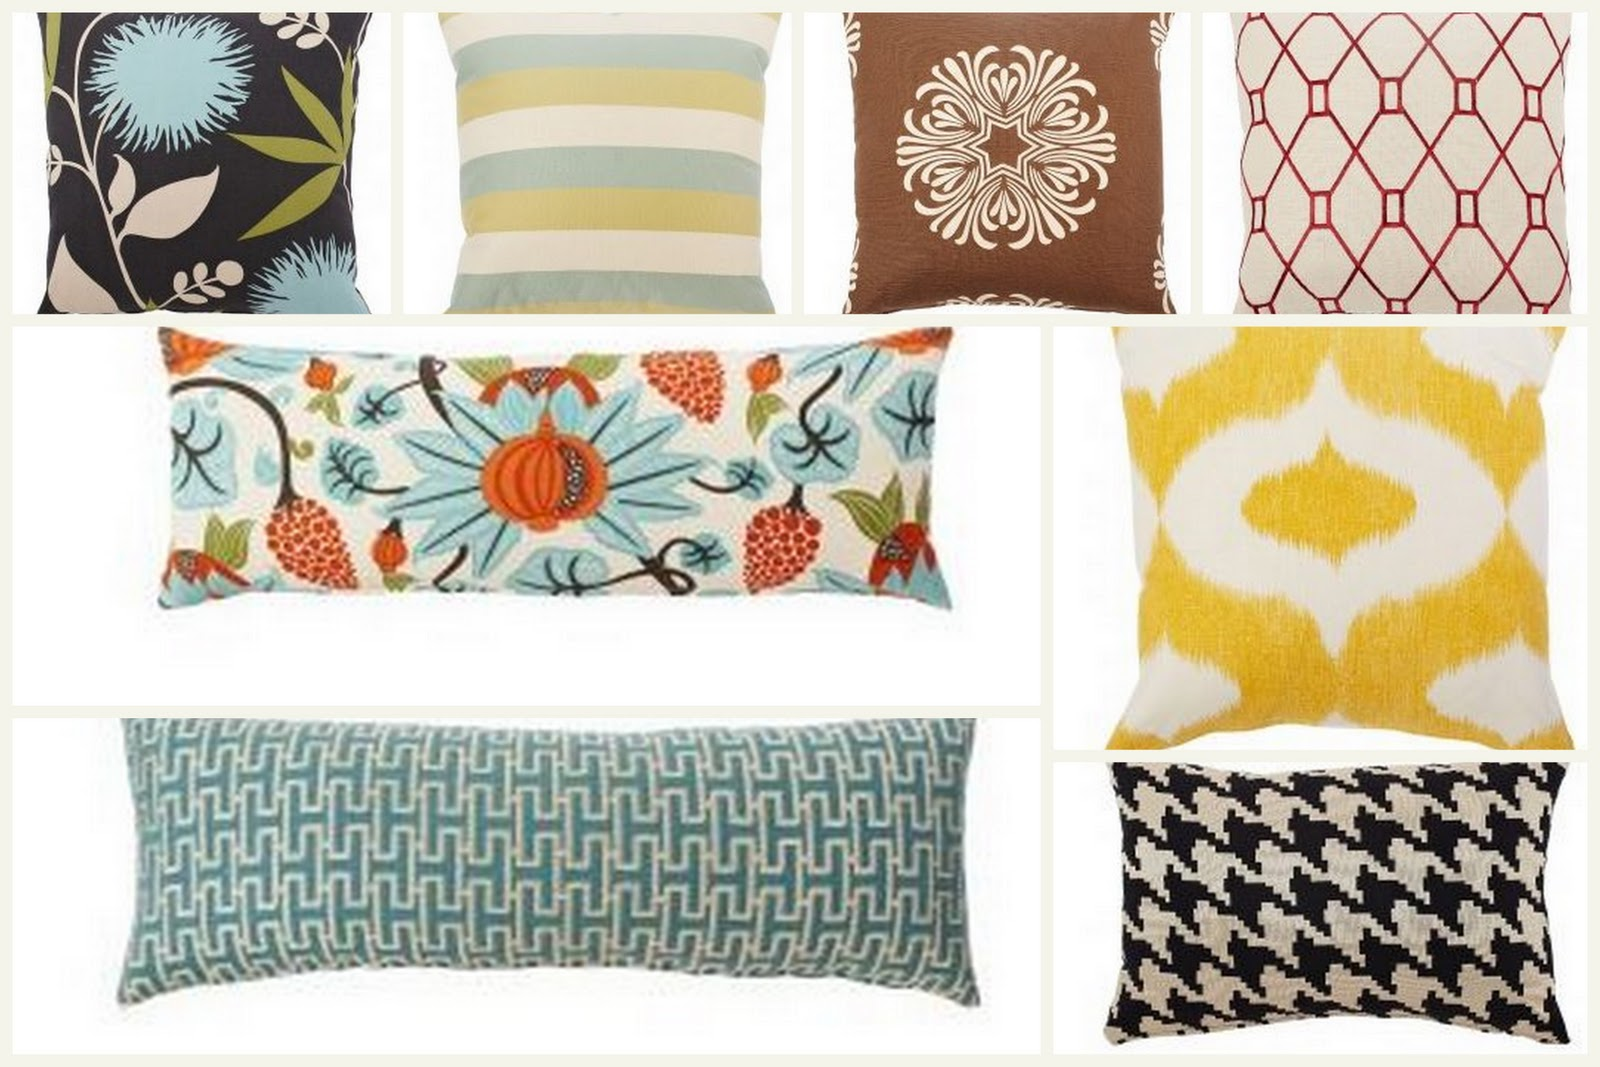 Serenity Now: Decorative Pillow Giveaway- Pillows by Dezign